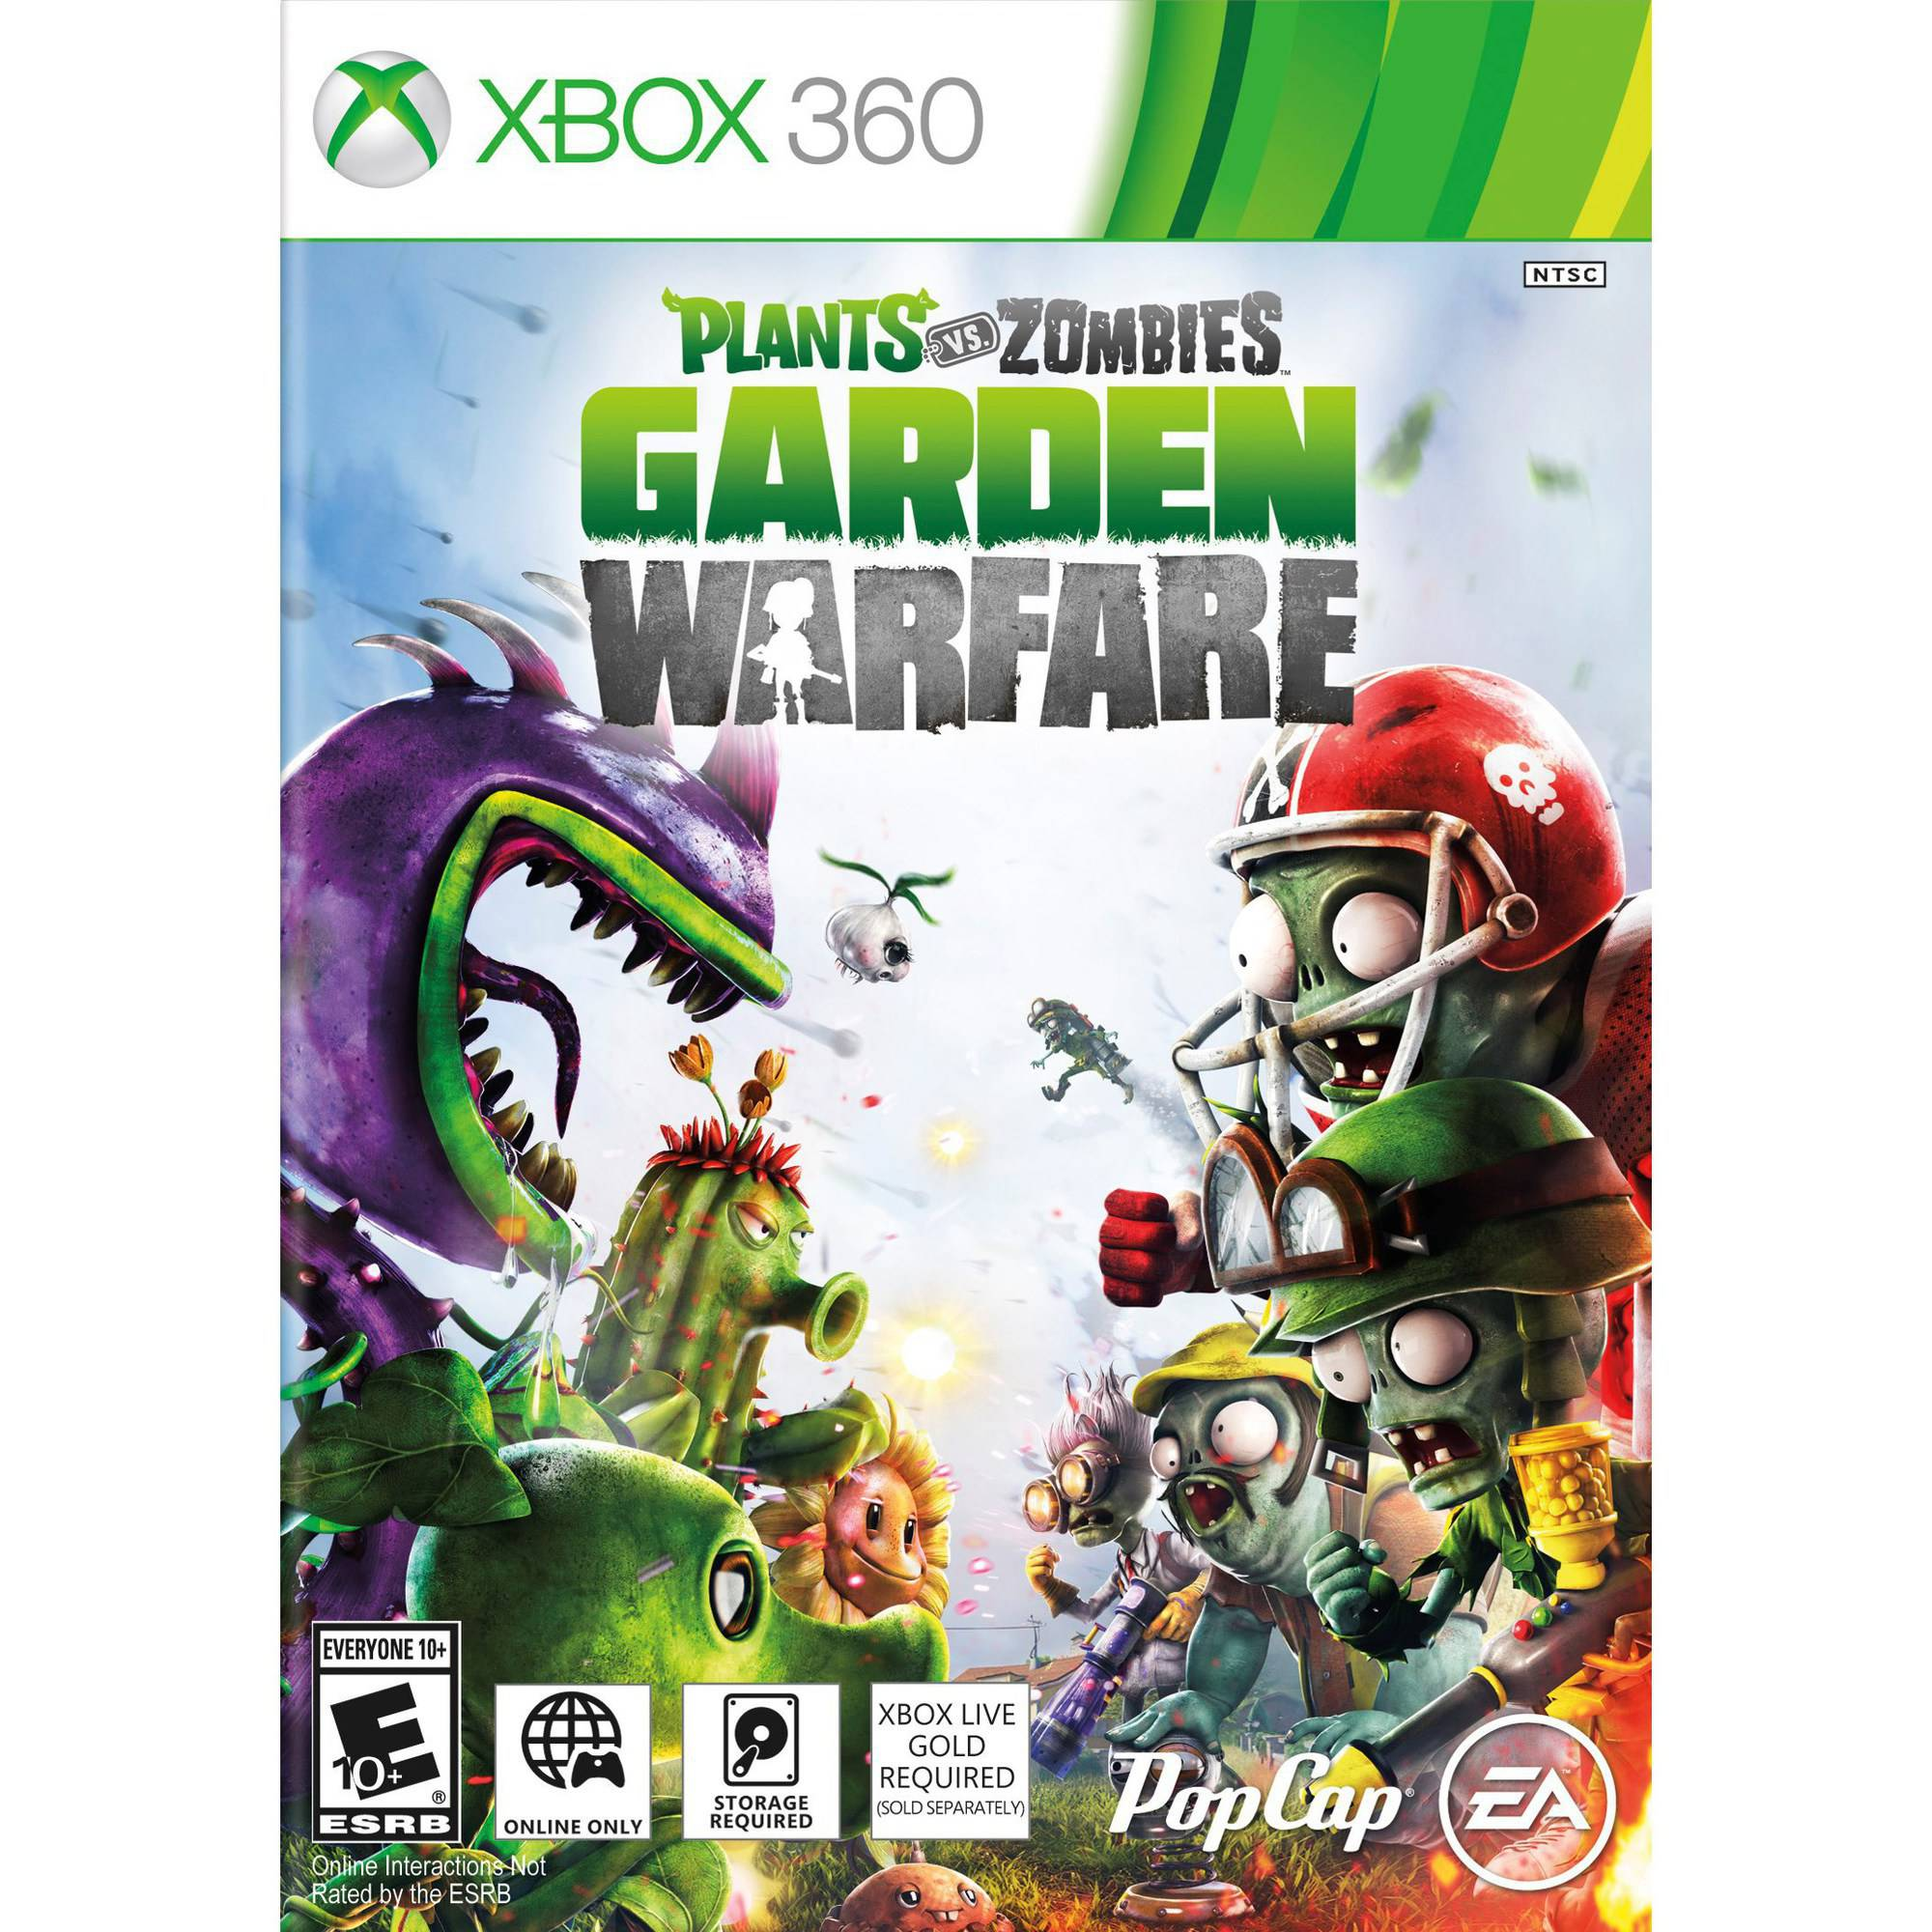 Plant Vs Zombie Garden Warfare (Xbox 360) - Pre-Owned